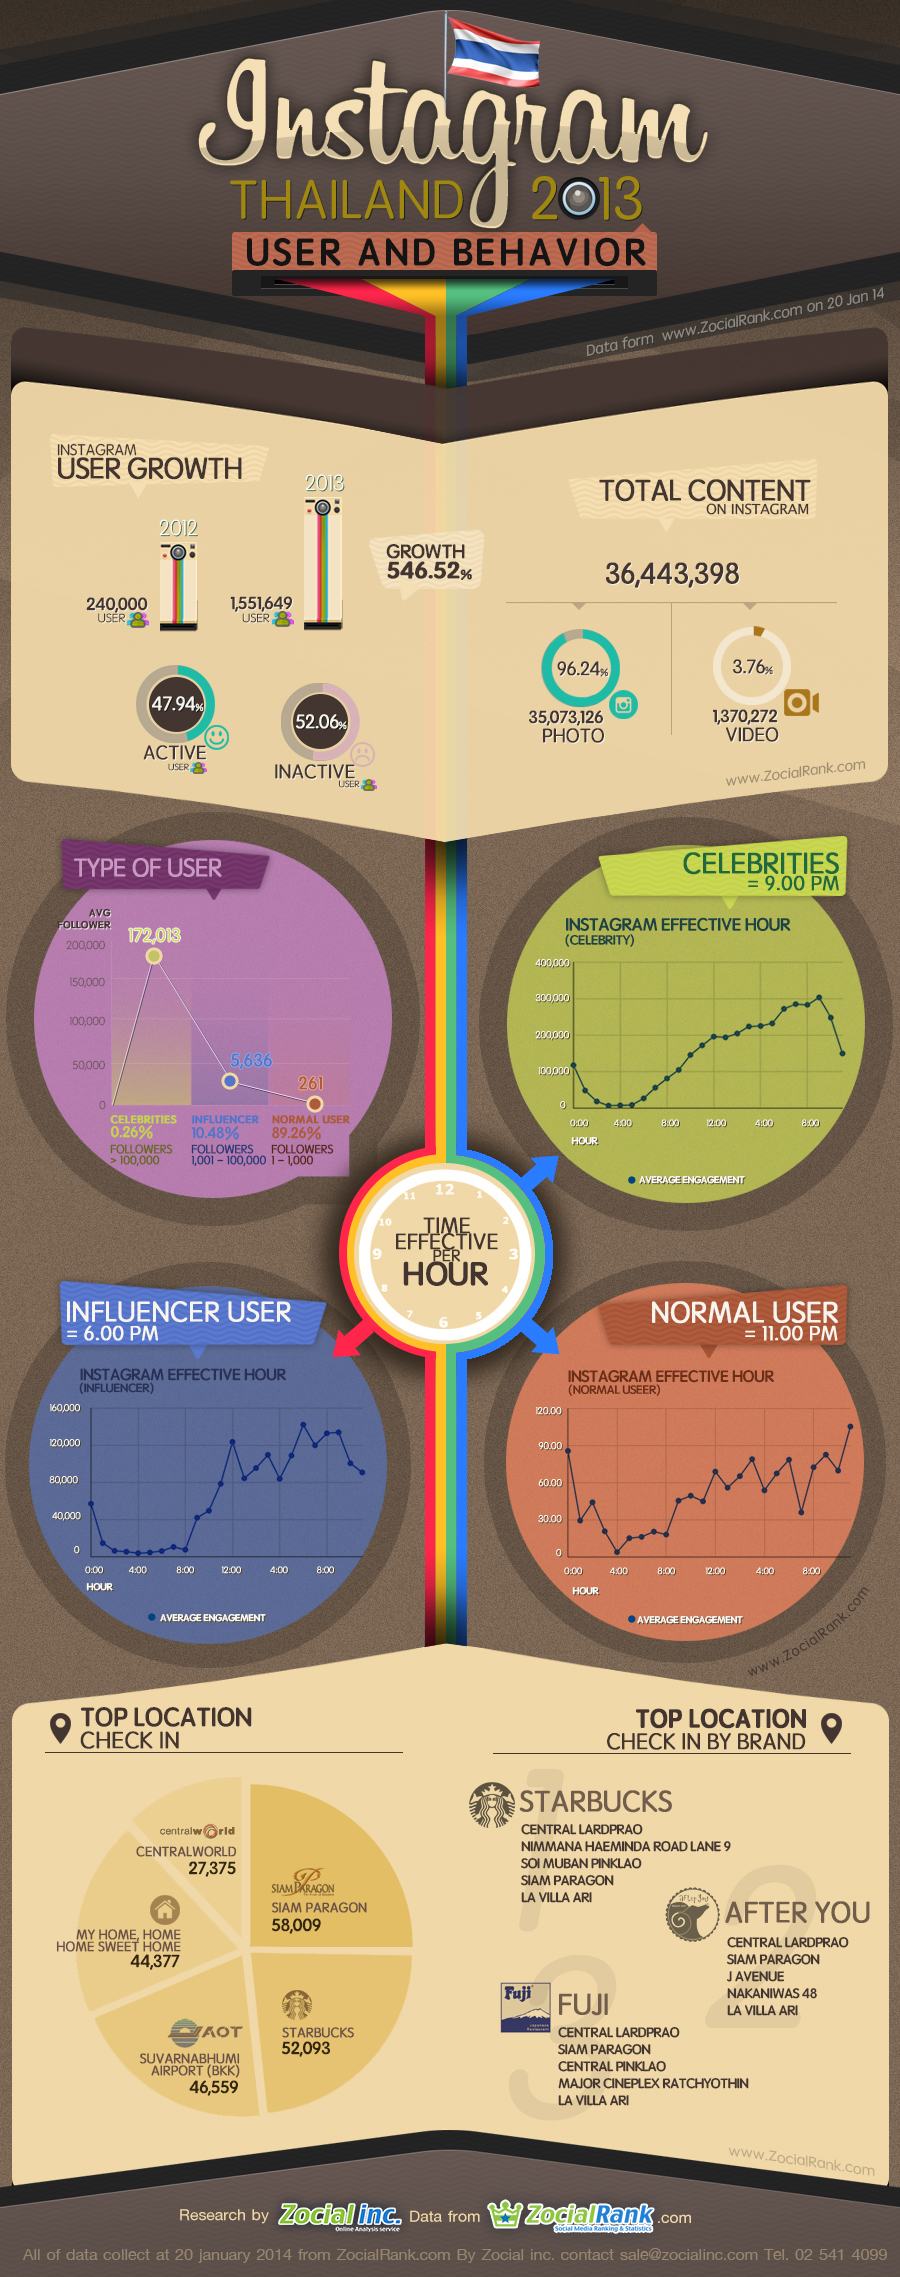 Final_IGInfographic2013